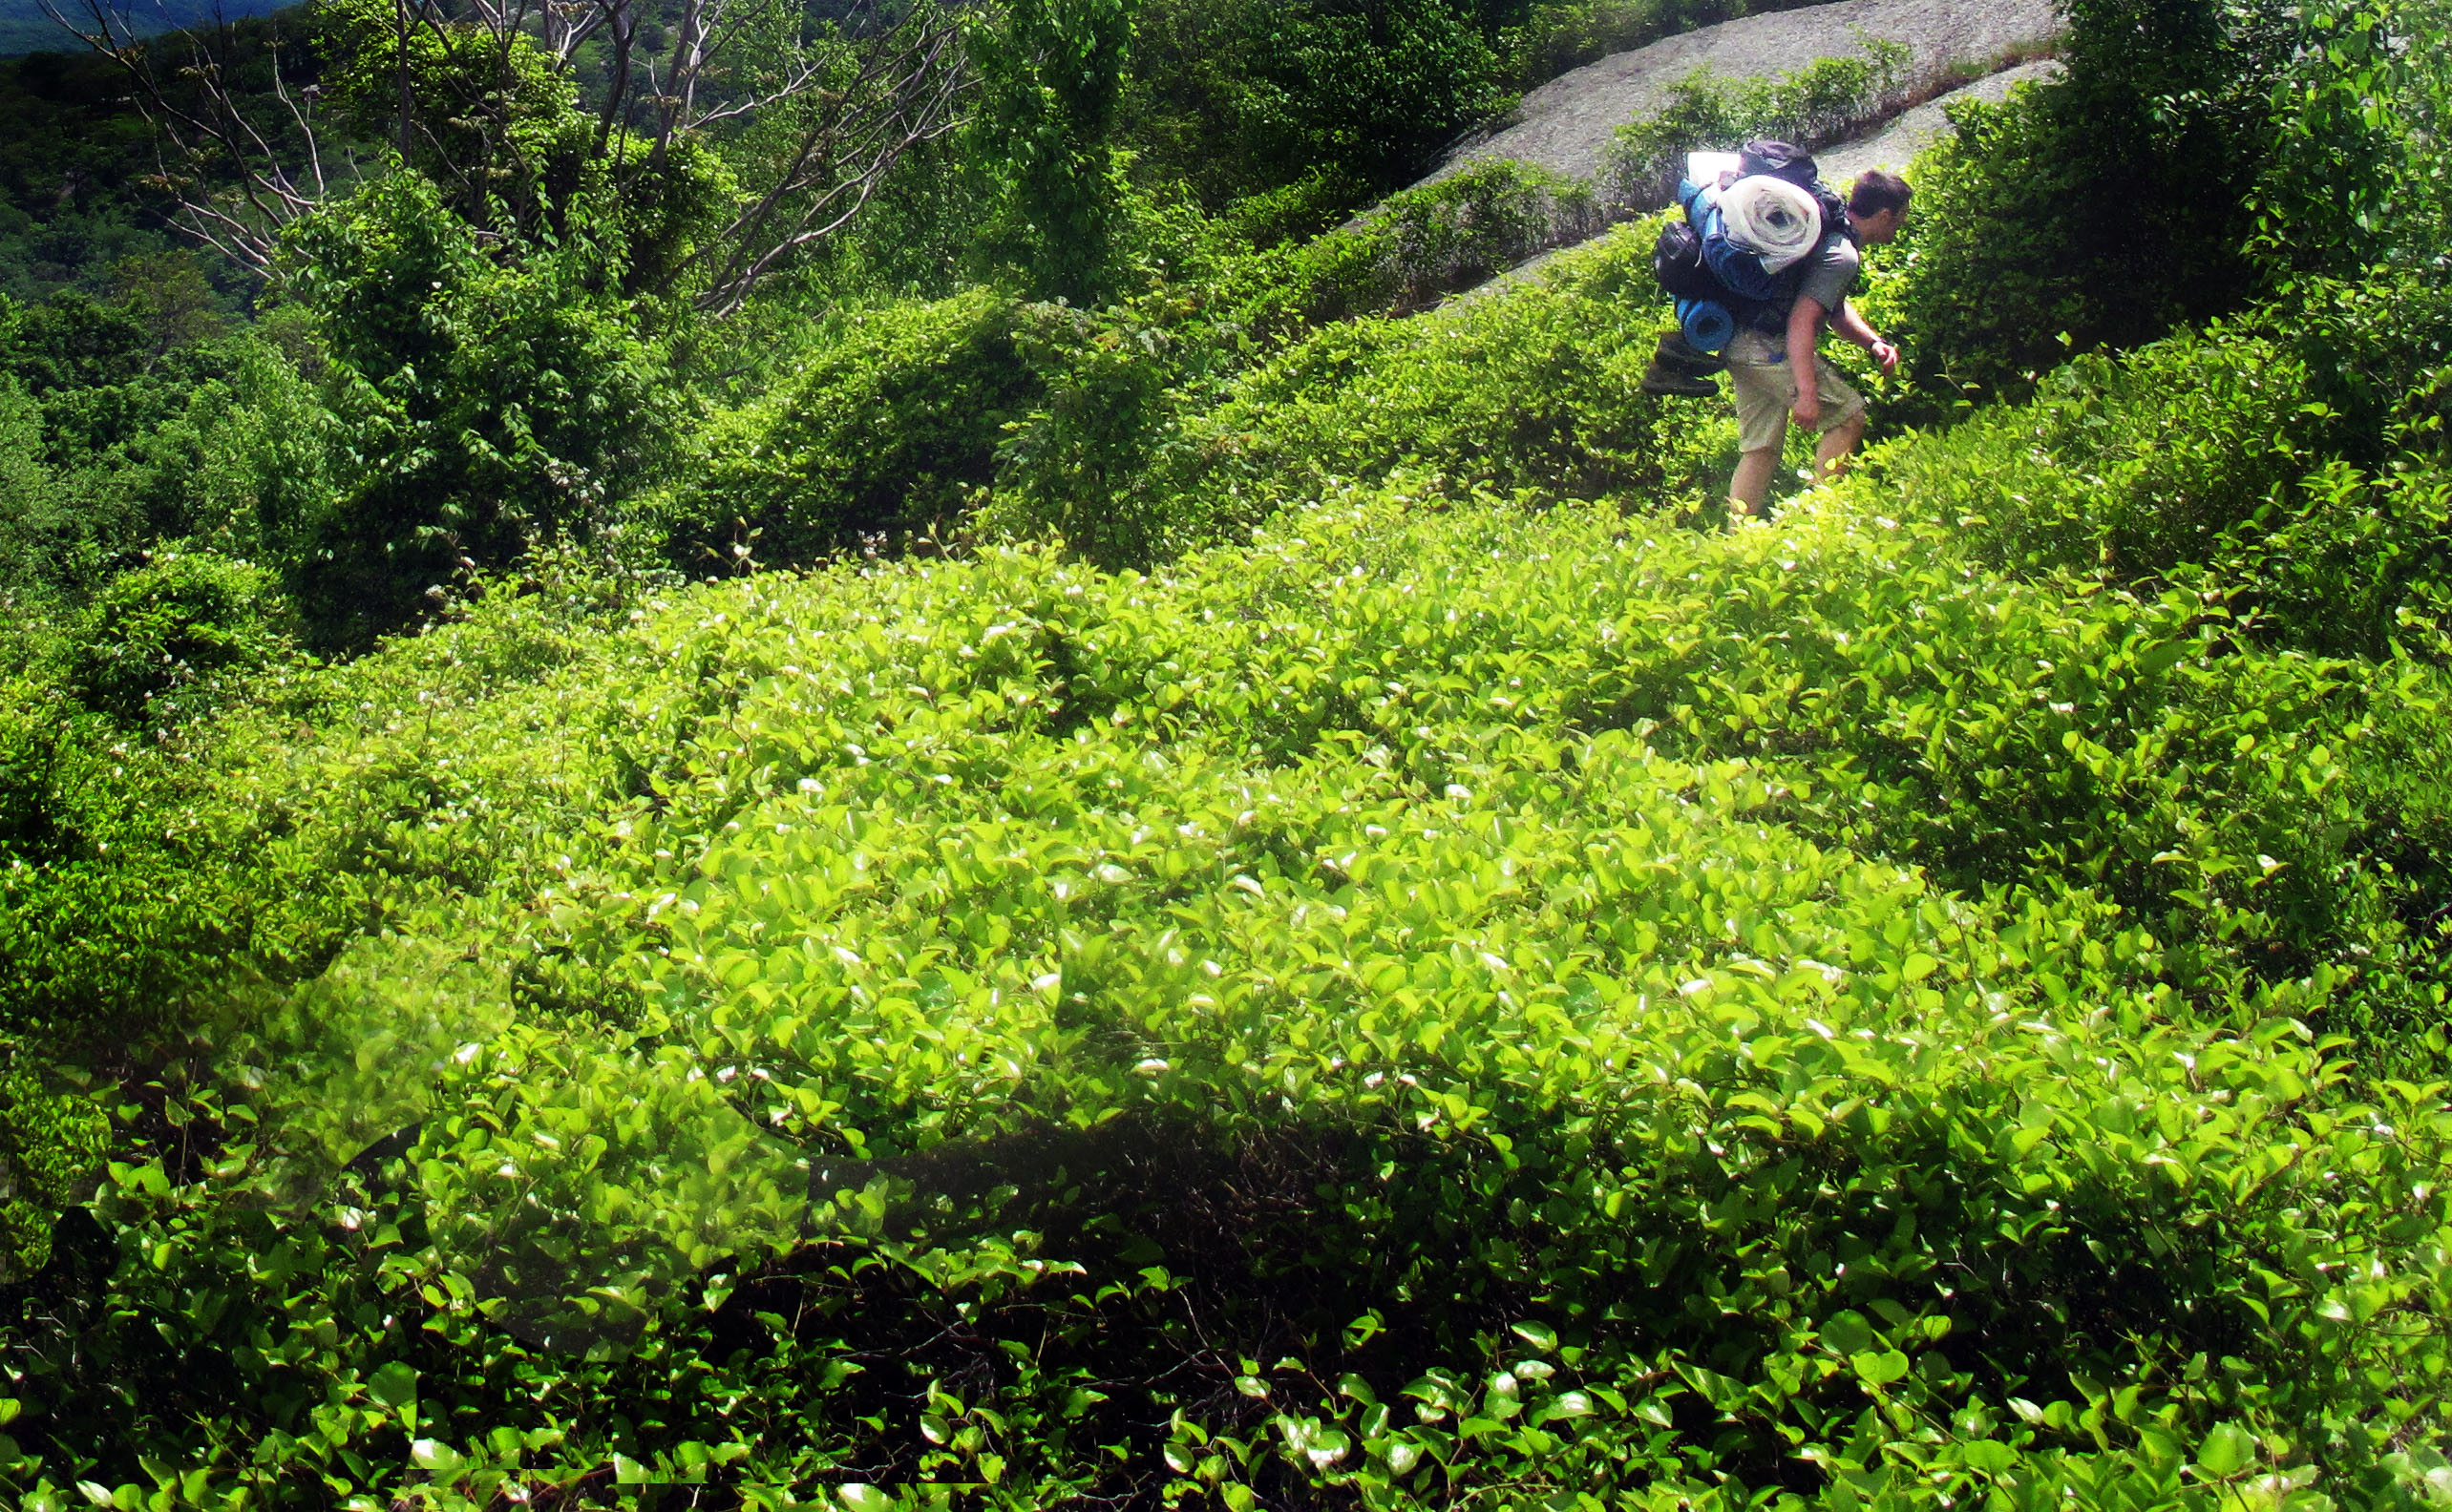 Hiker from Outdoor Action is surrounded by green vegatation on the way to Bald Rocks shelter in Harriman State Park.